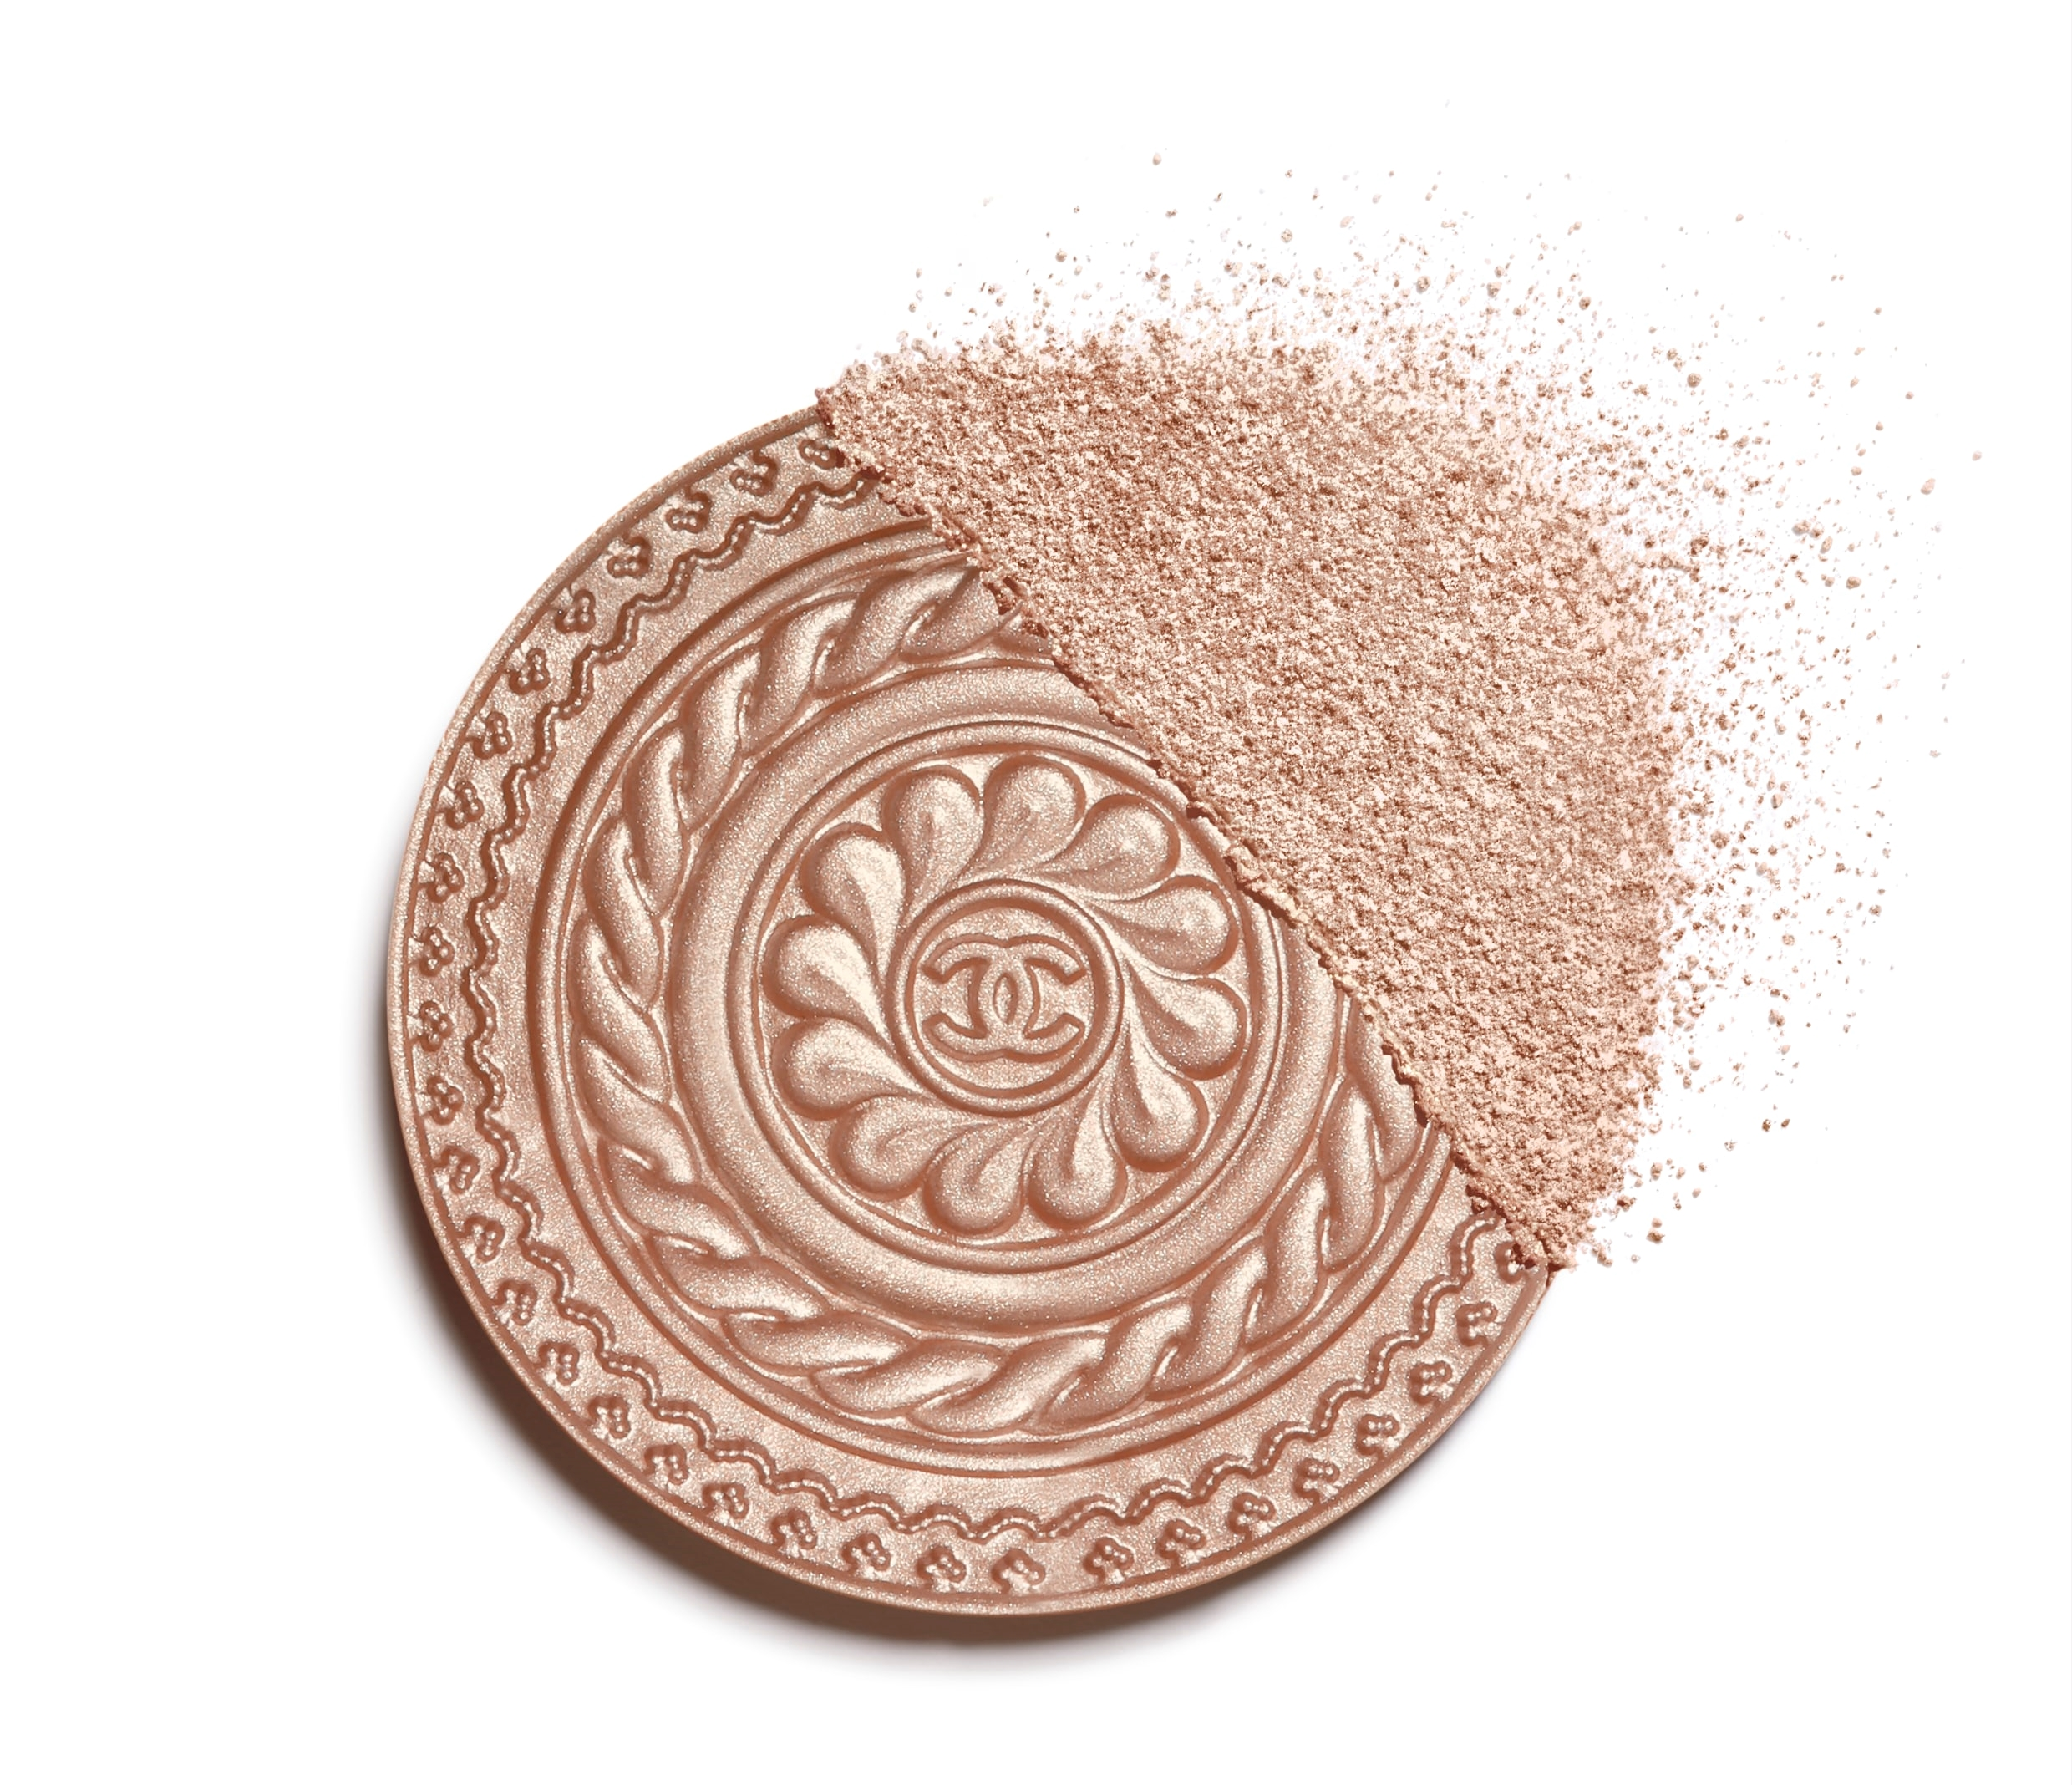 eclat-magnetique-de-chanel-illuminating-powder-metal-peach-packshot-default-151500-8819395624991.jpg